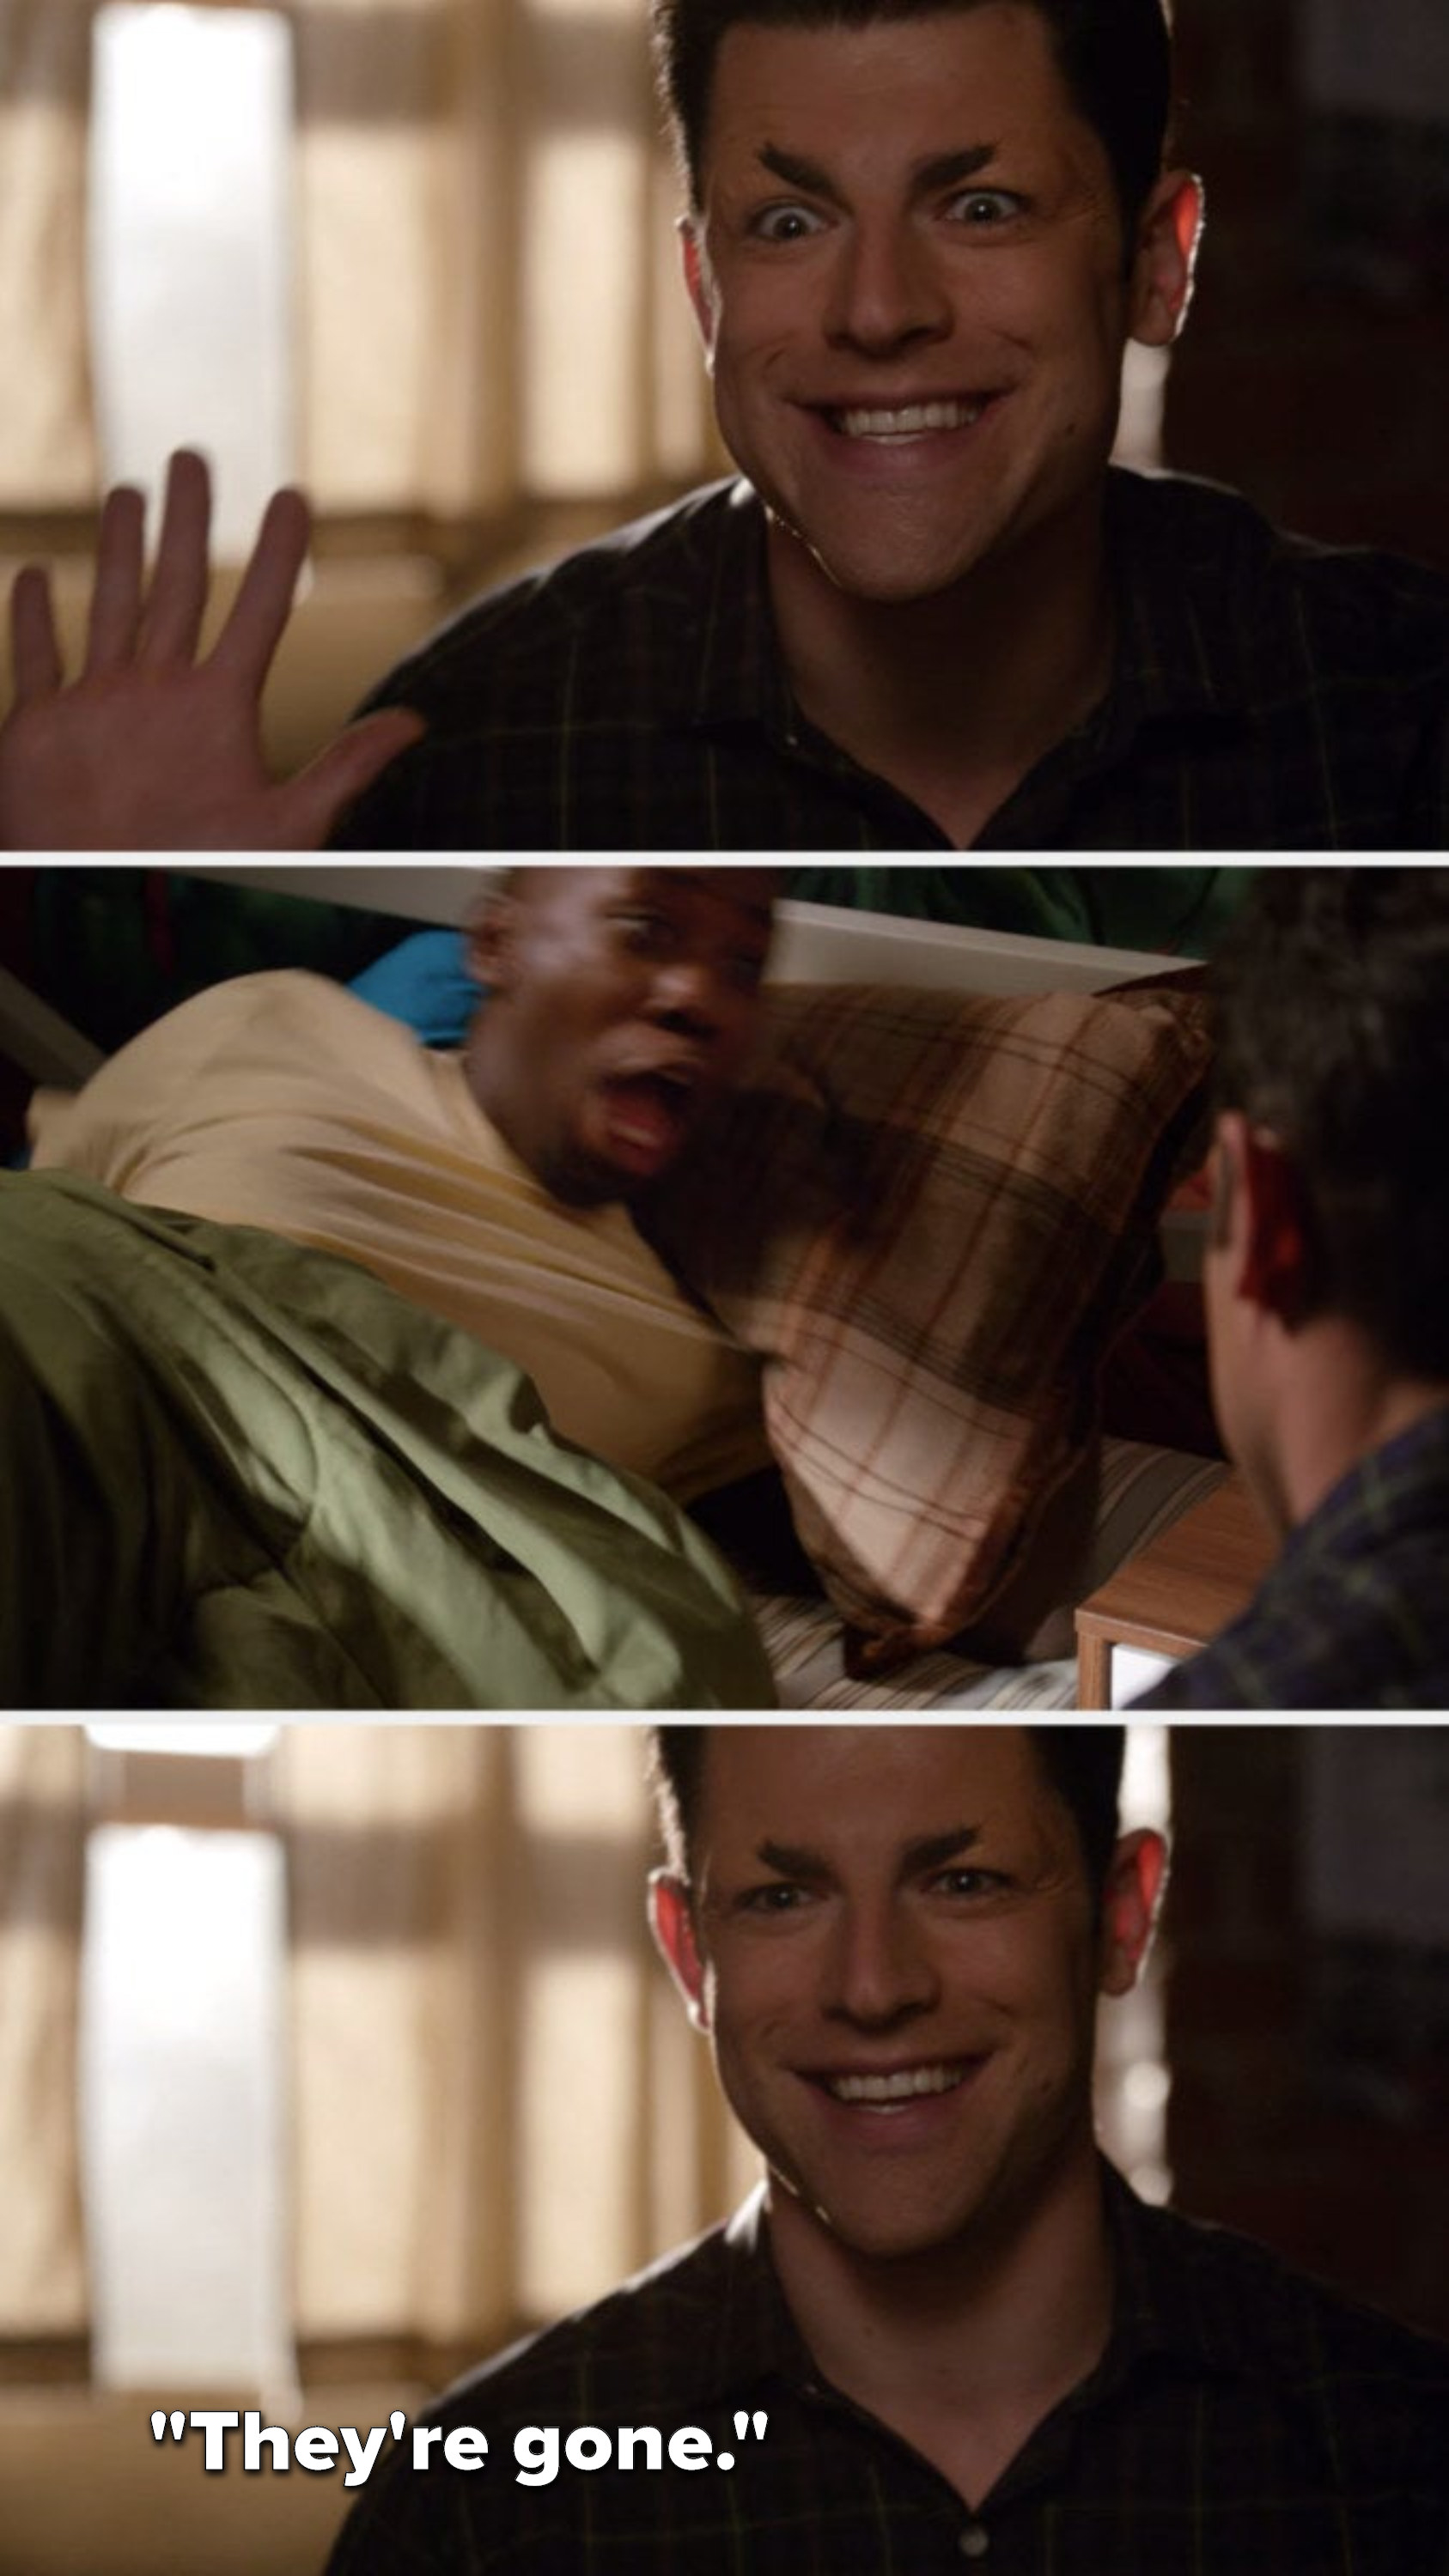 """Schmidt is without most of his eyebrows and smiles at Winston, Winston screams, and Schmidt says, """"They're gone"""""""